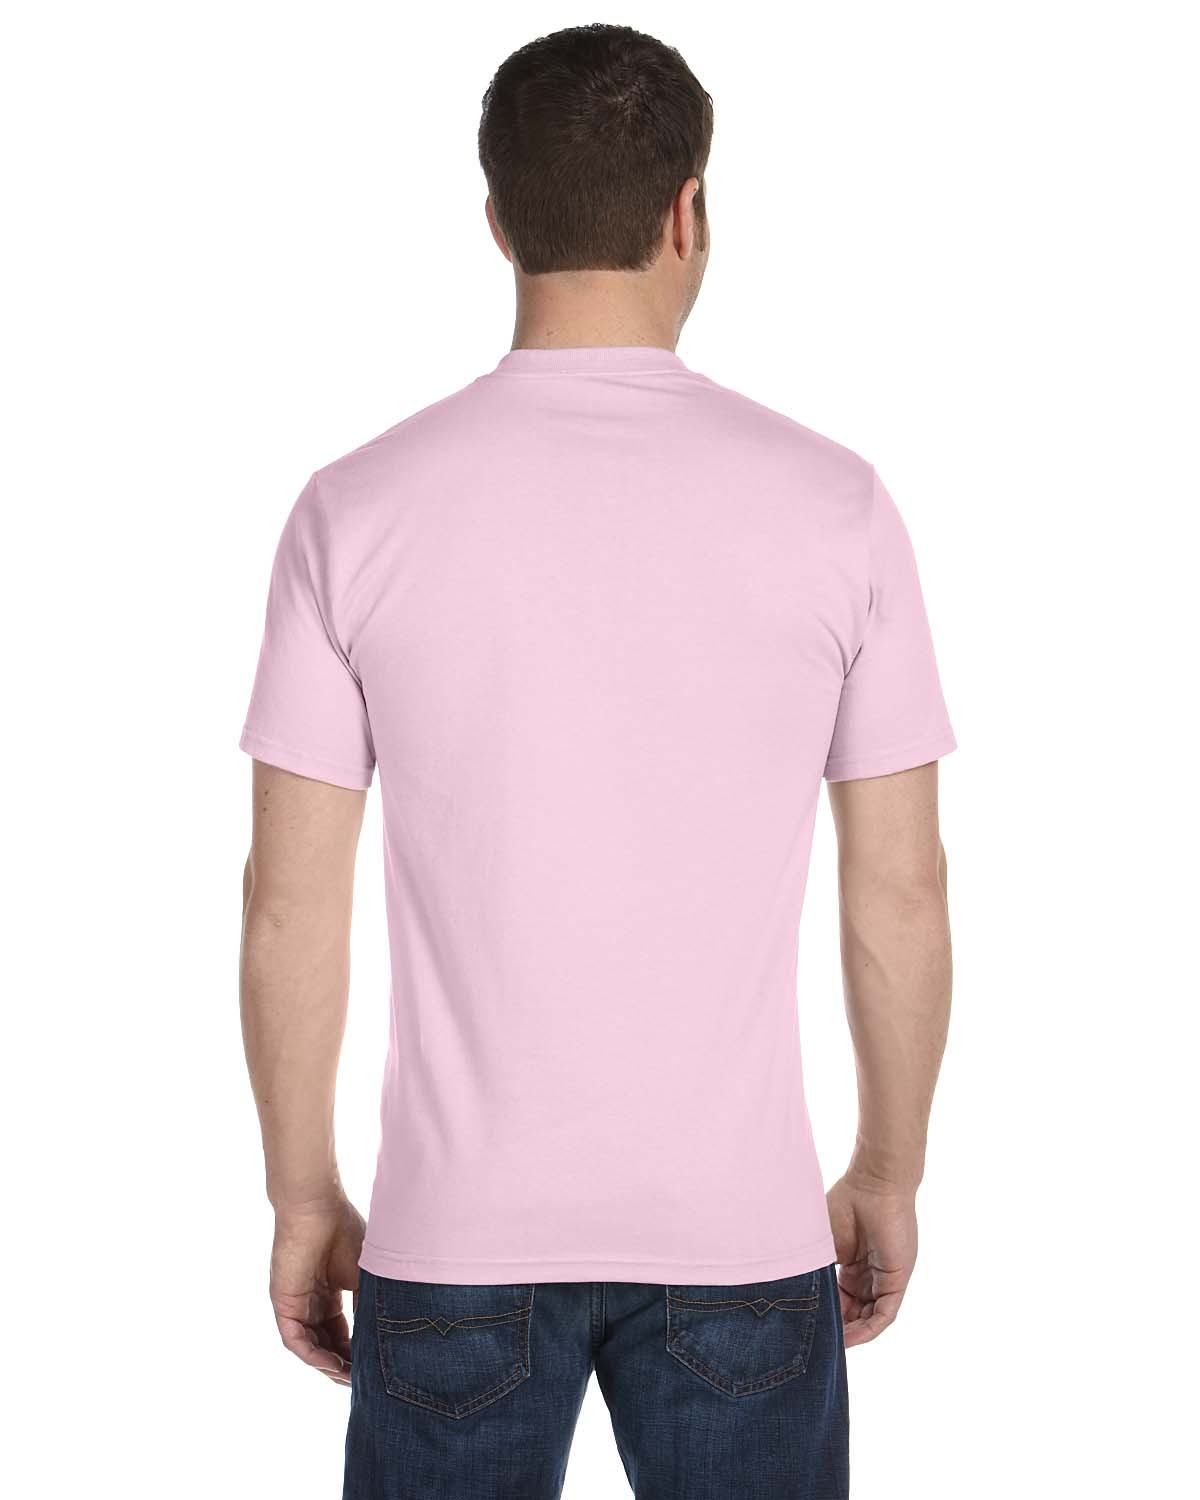 5280 Hanes PALE PINK